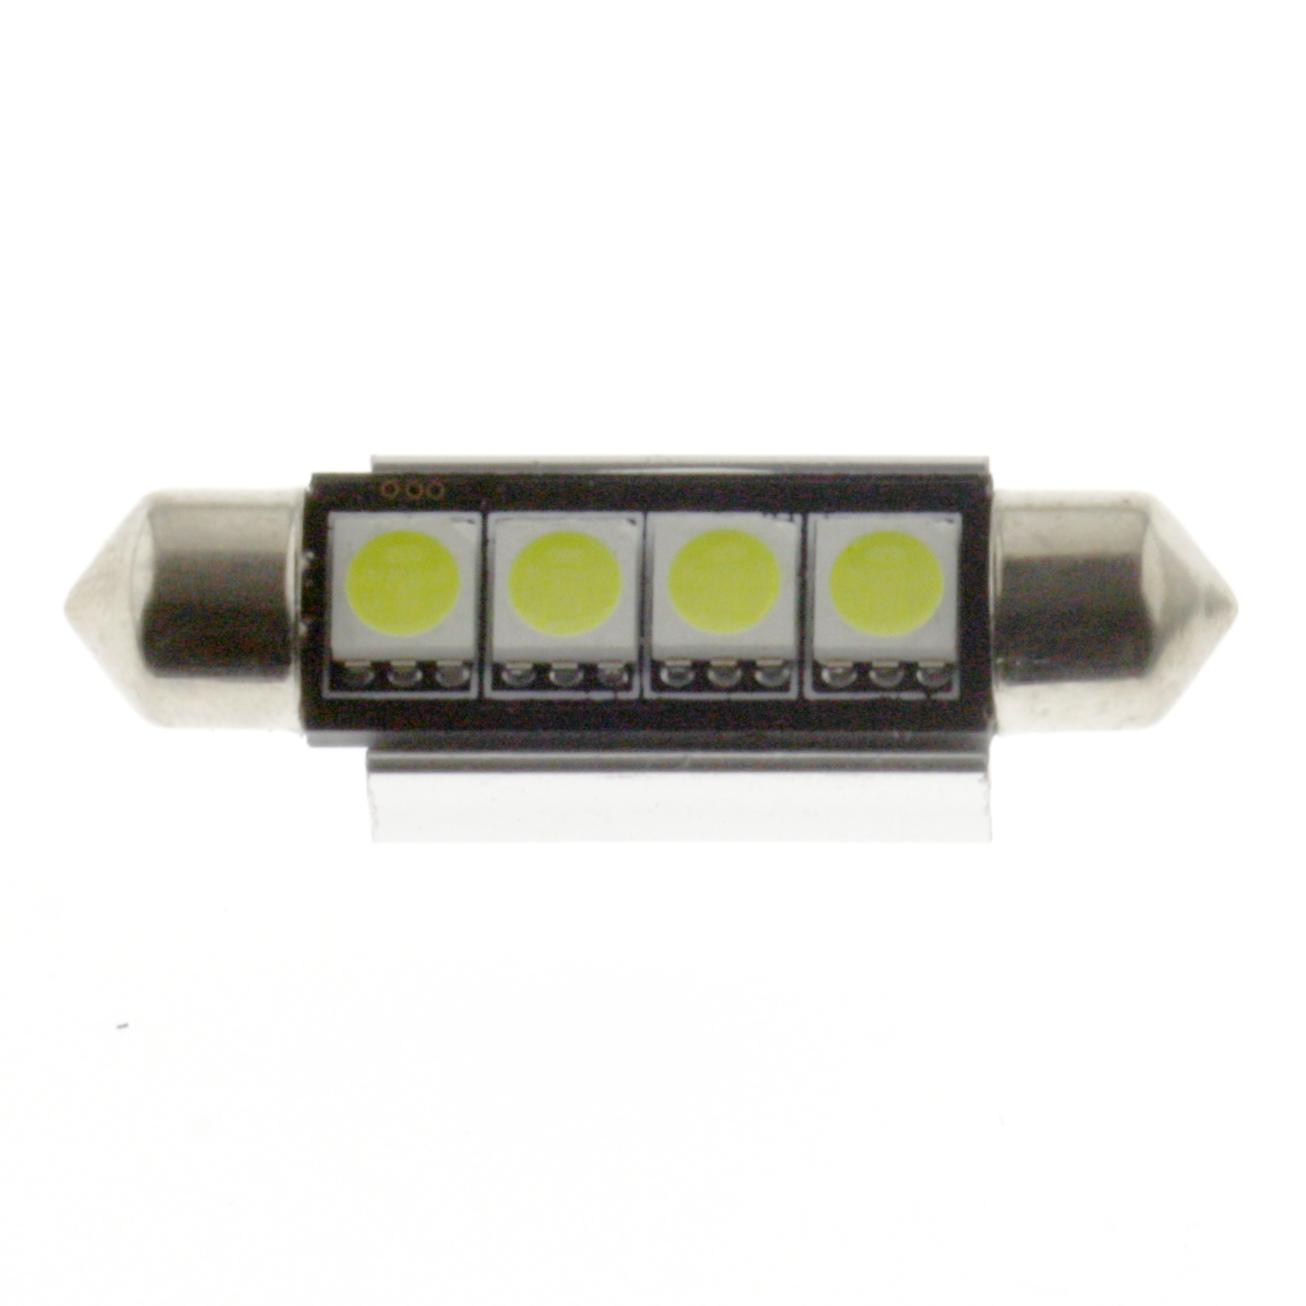 LED-Soffitte 42mm, 6000K, Canbus, 10er Pack